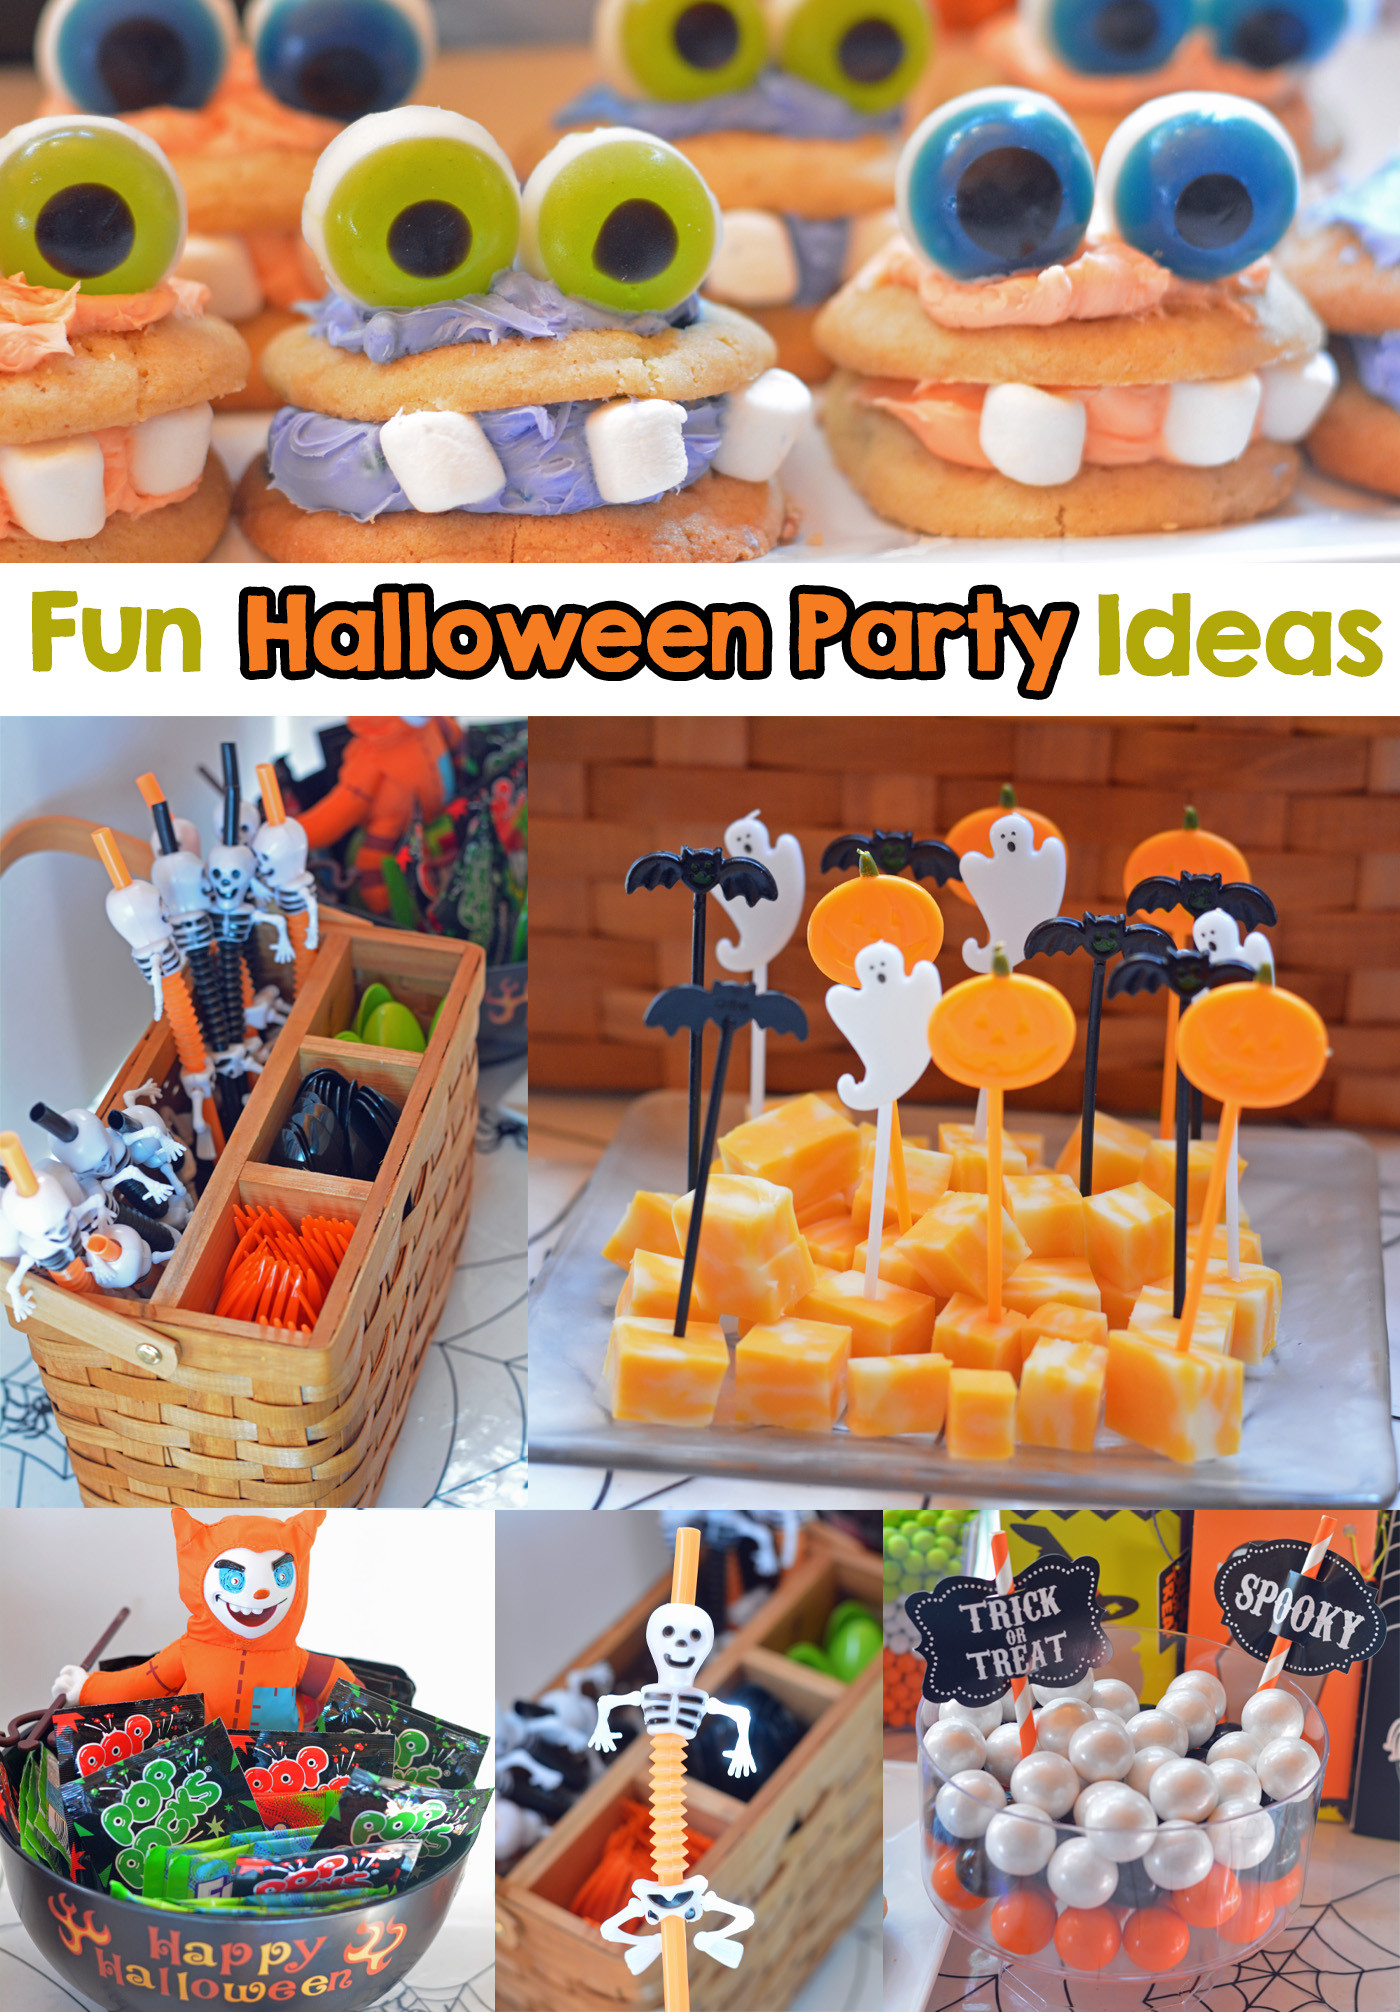 Ideas Halloween Party  Fun Halloween Party & Costume Ideas Mommy s Fabulous Finds